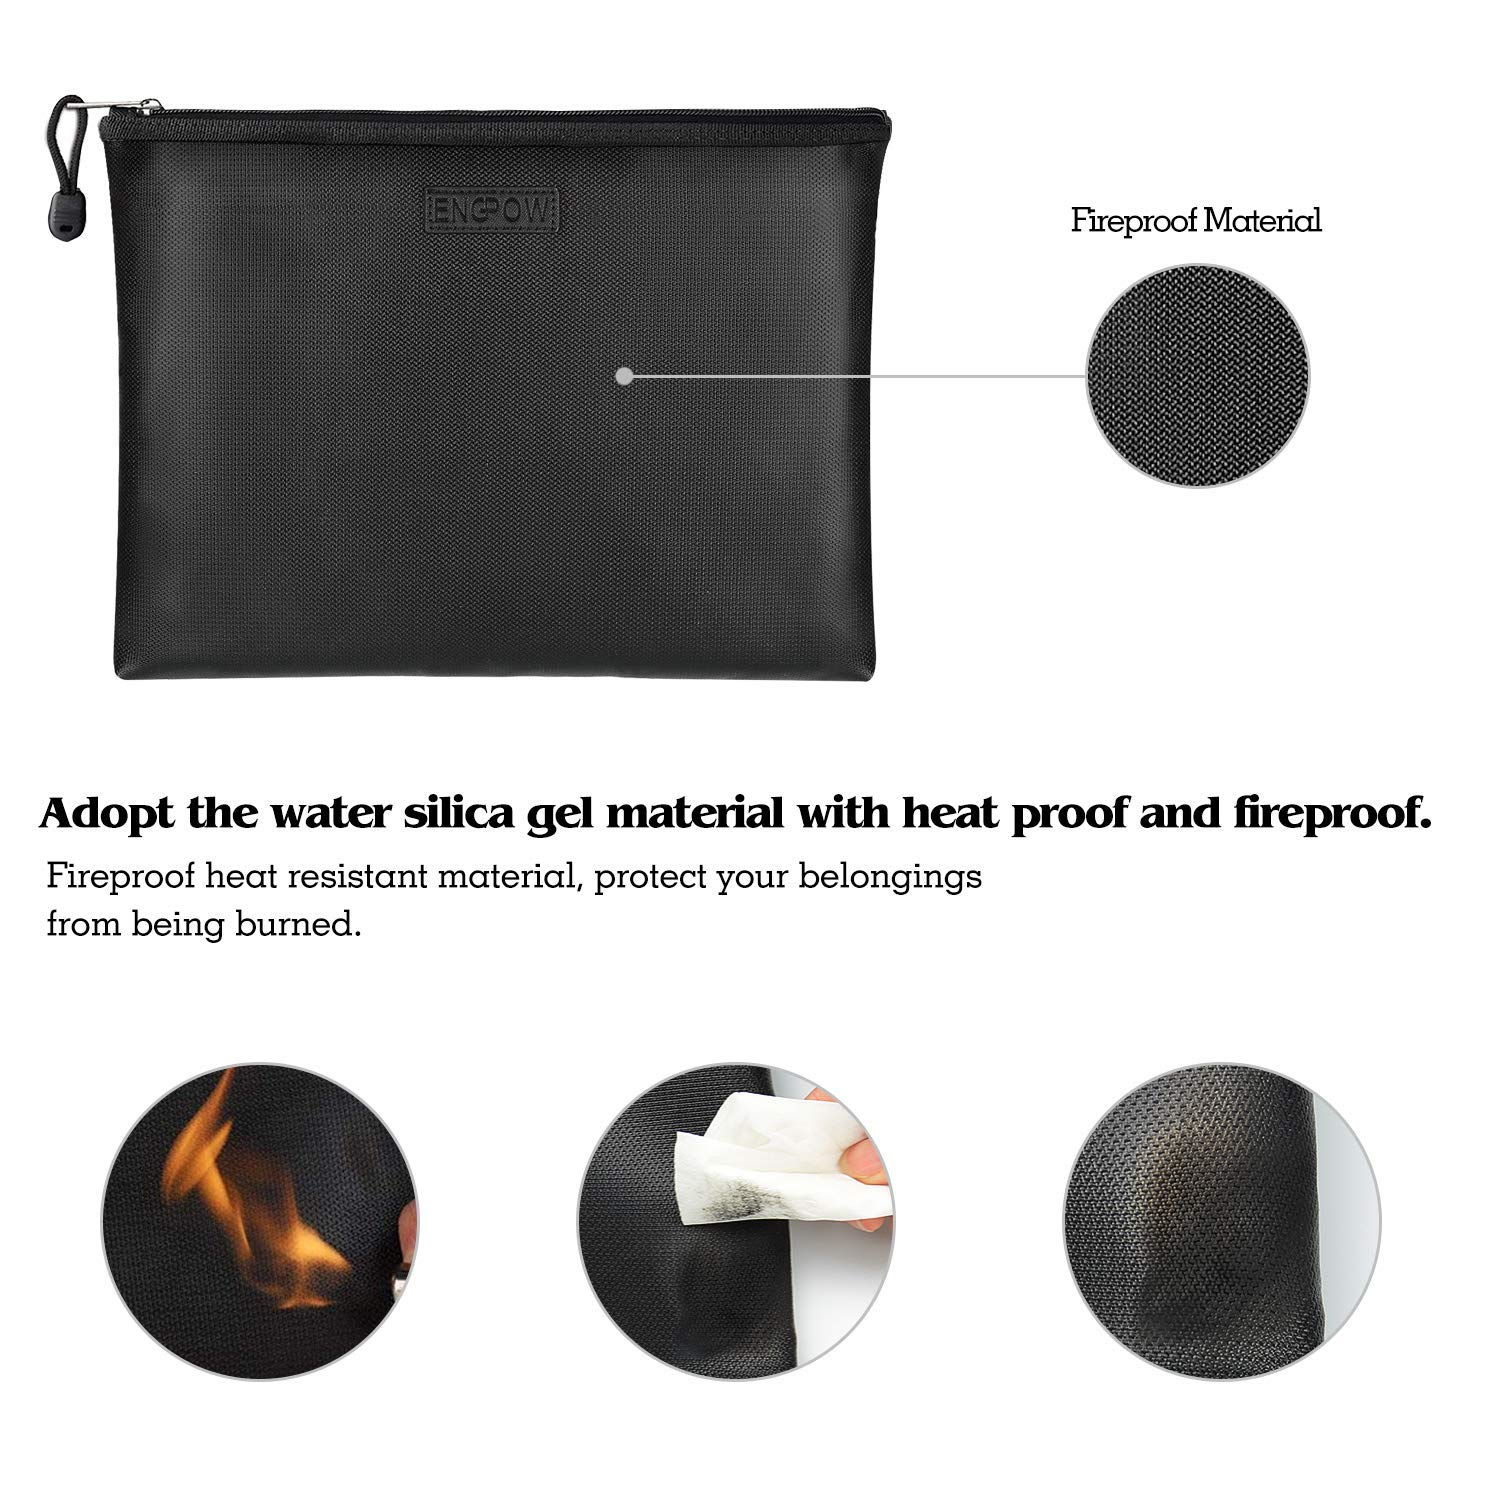 ENGPOW Fireproof Money Bag/Silicone Coated Fire Water Resistant for Document, Securit Bank Deposit with Utility Zipper Coin Bag,11.5X7.9 inches Check Wallet,Black by ENGPOW (Image #1)